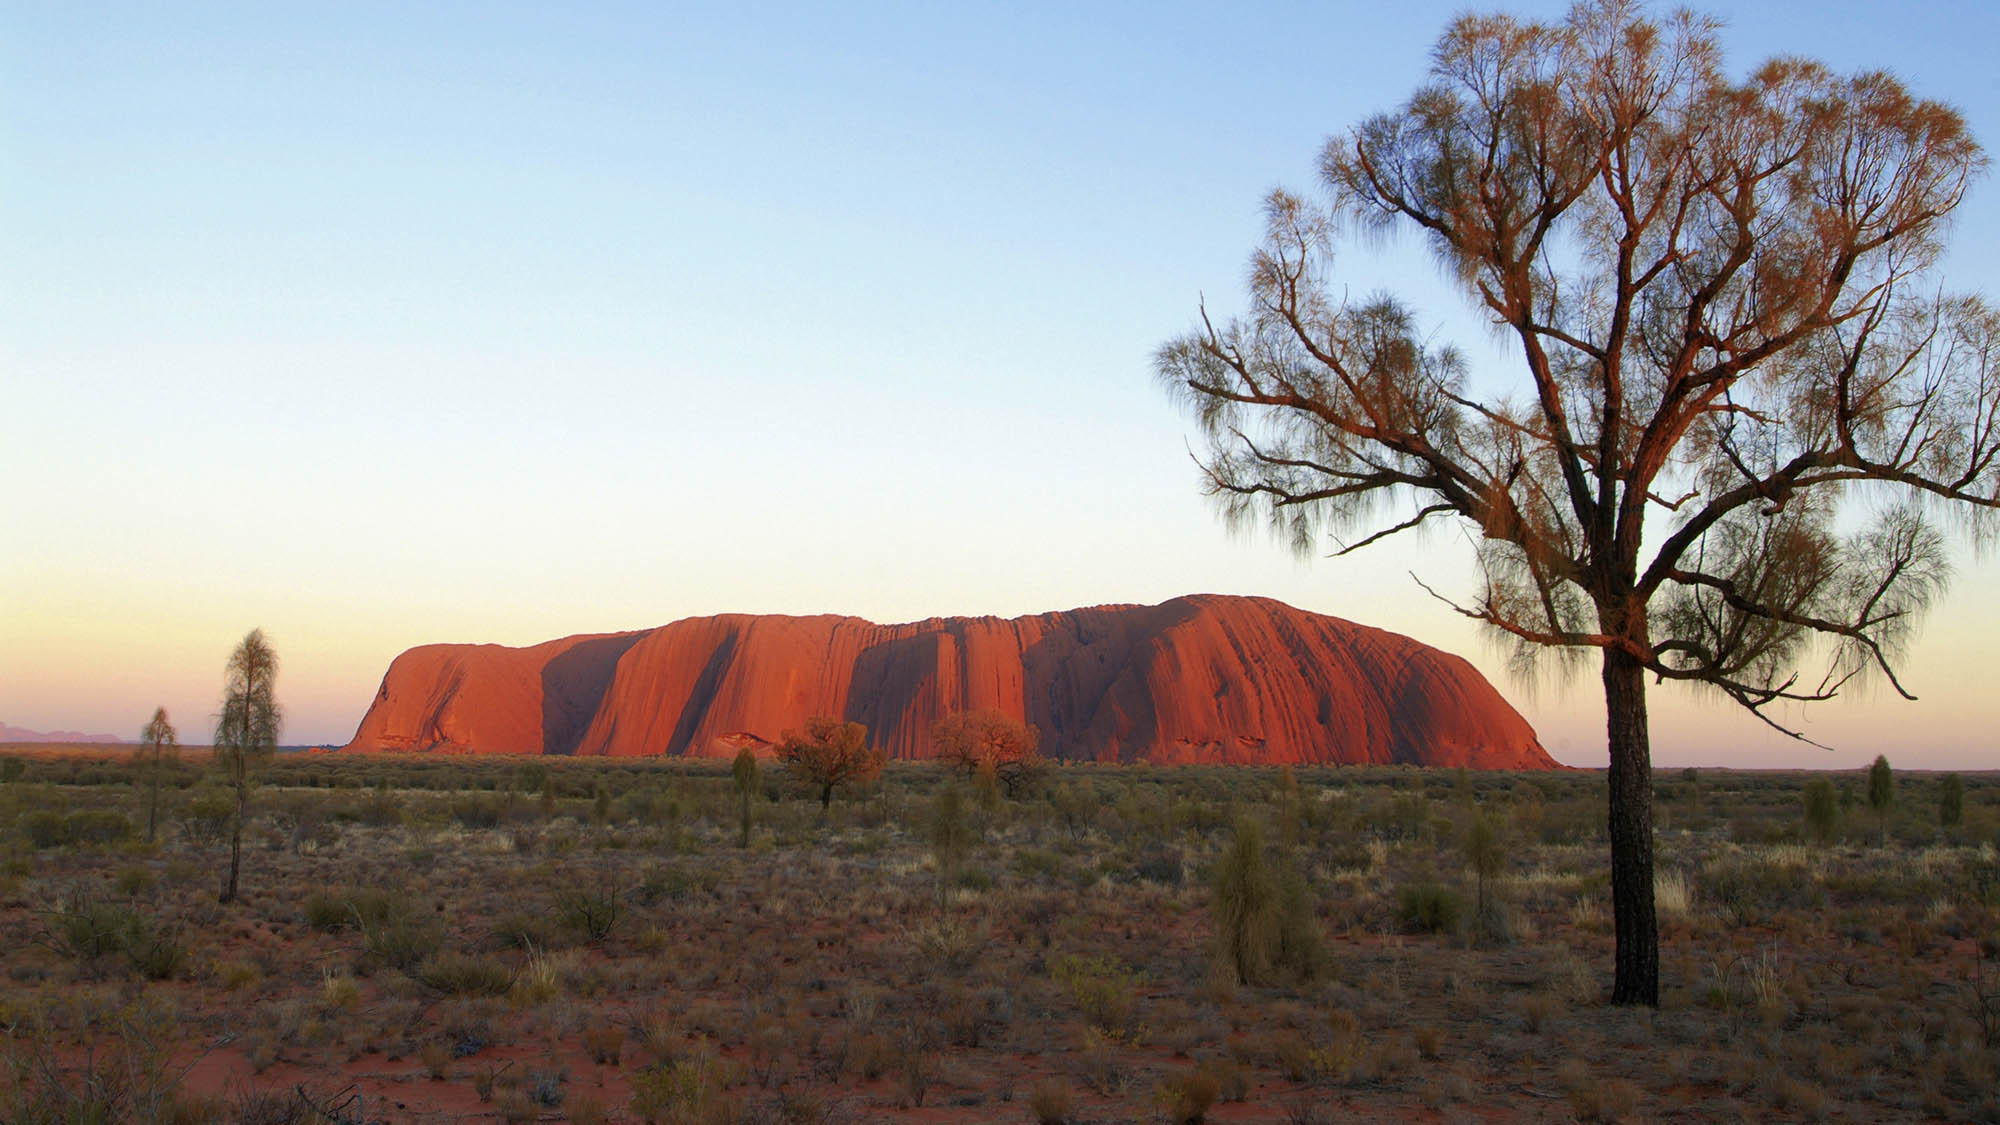 The Ghan and Red Centre with Sails in the Desert - NT Now